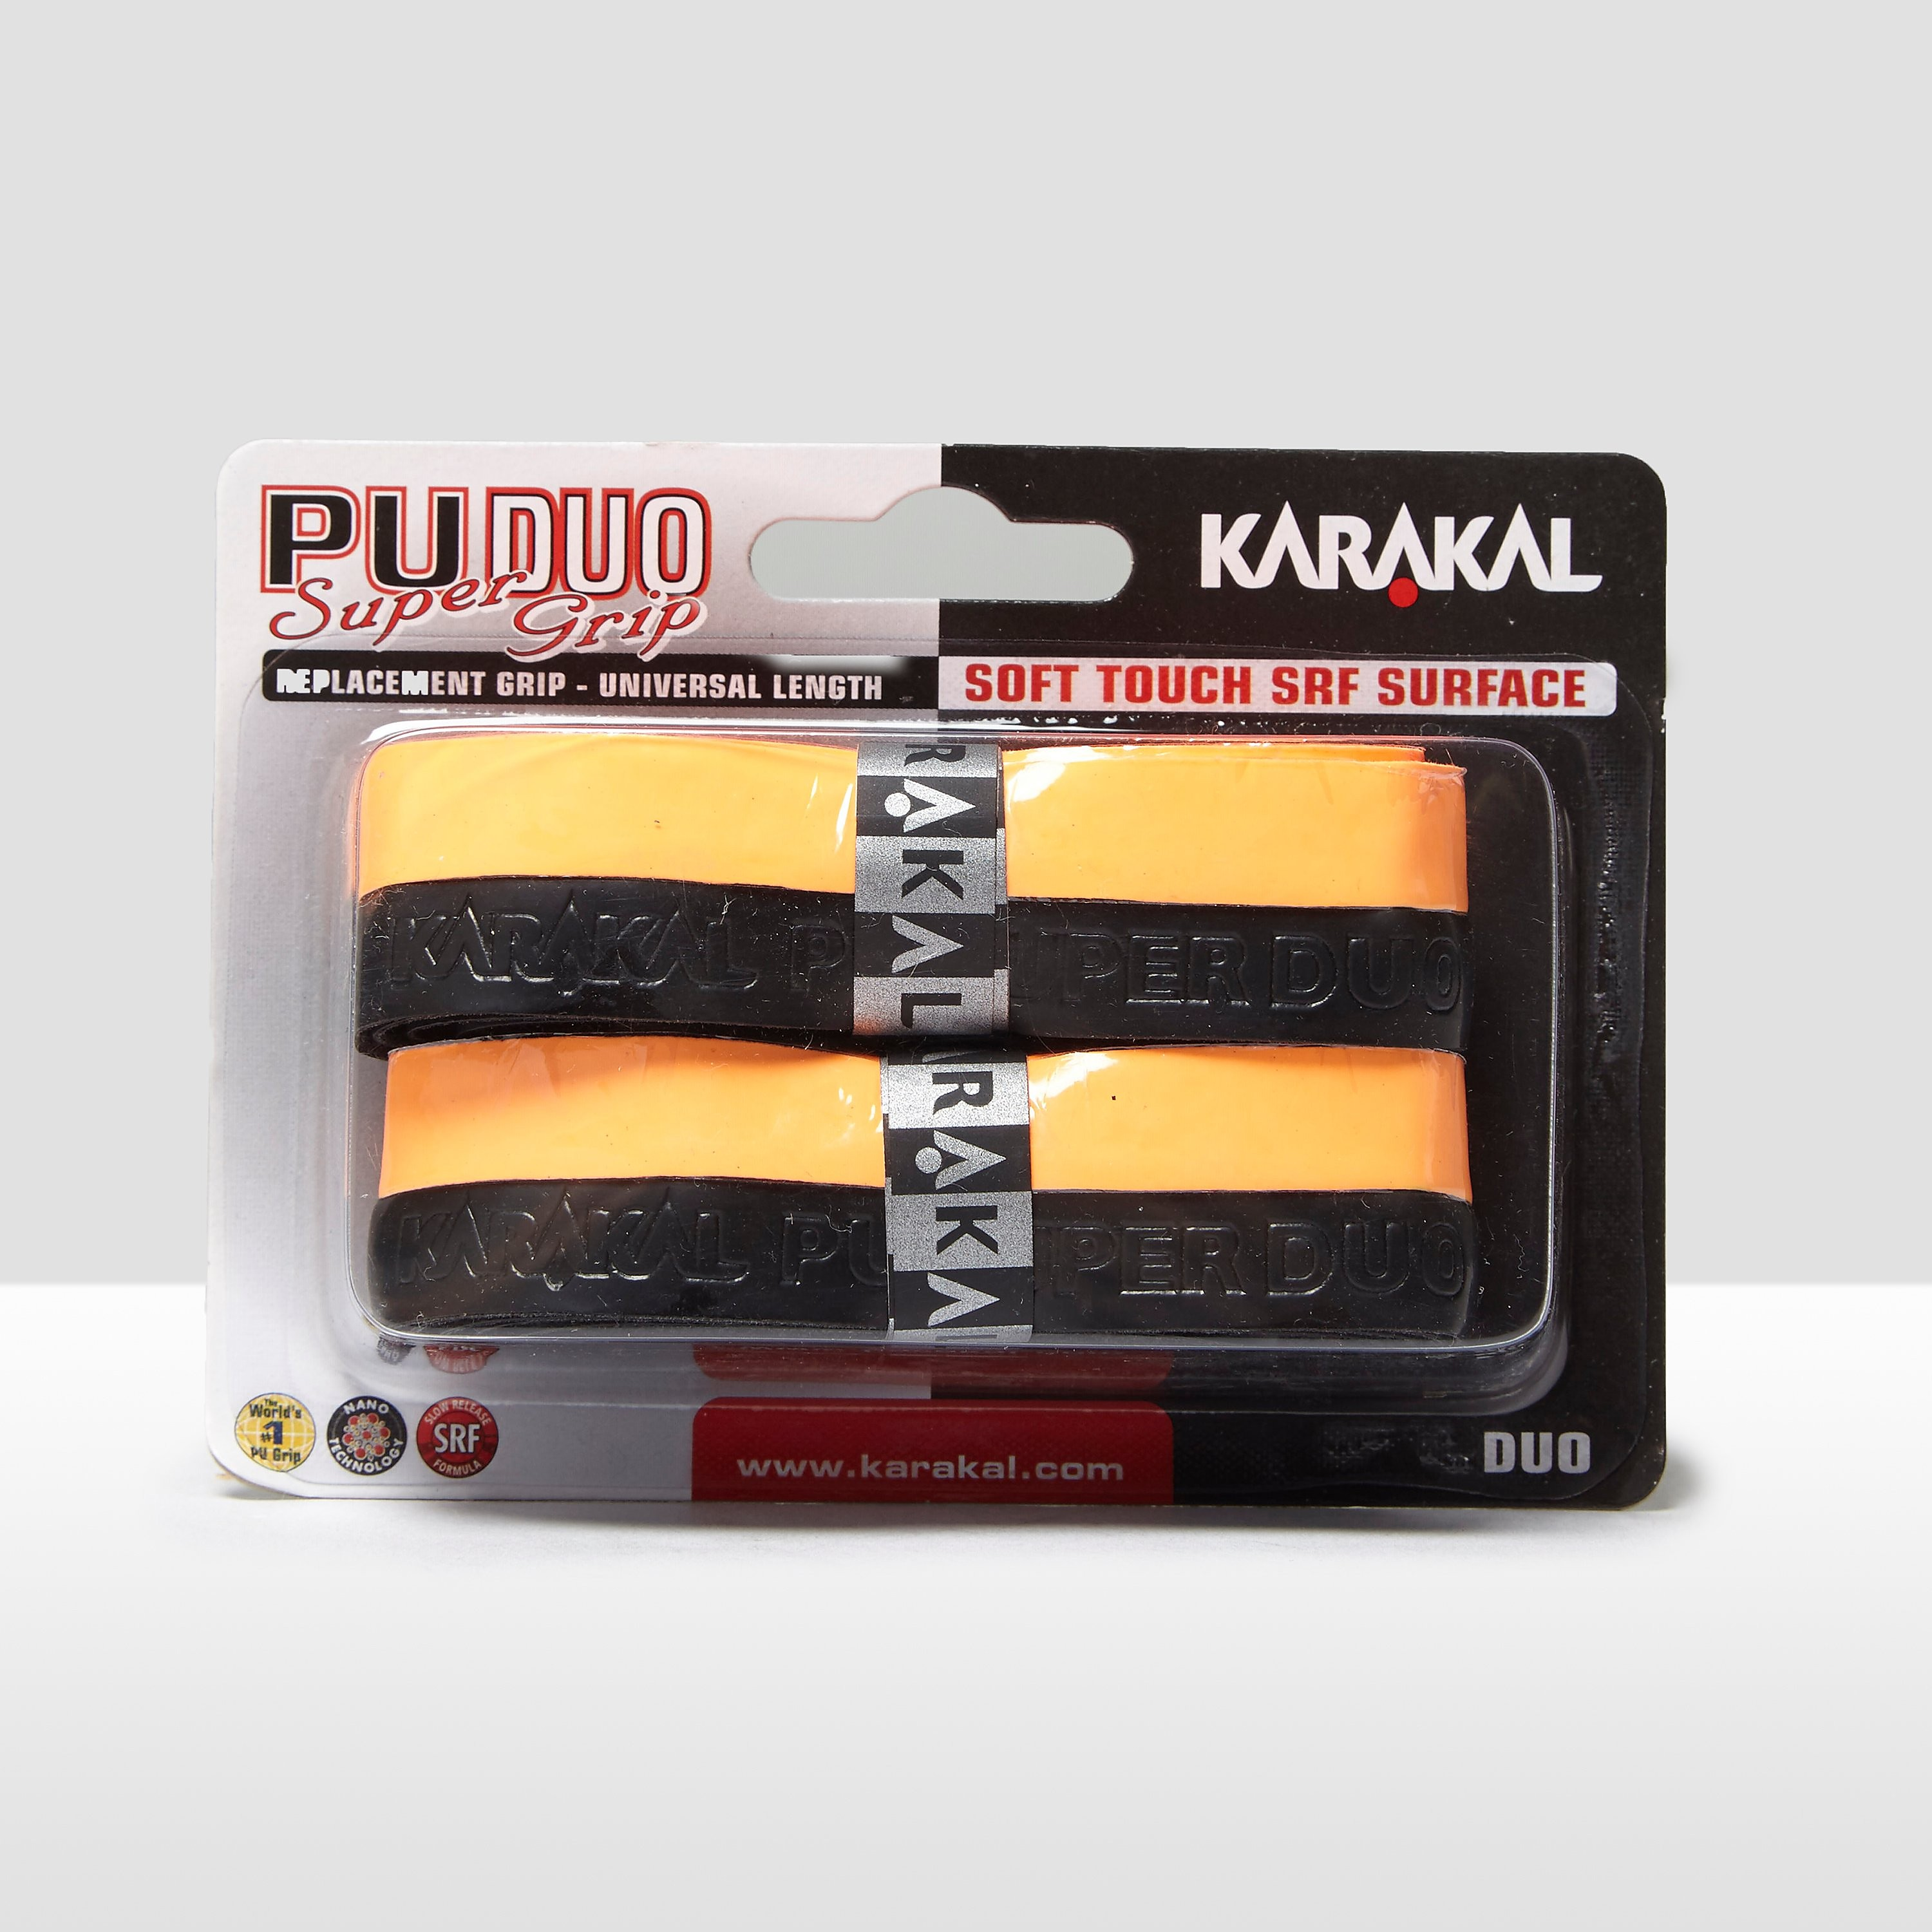 Karakal PU Duo Super Grip Universal Replacement